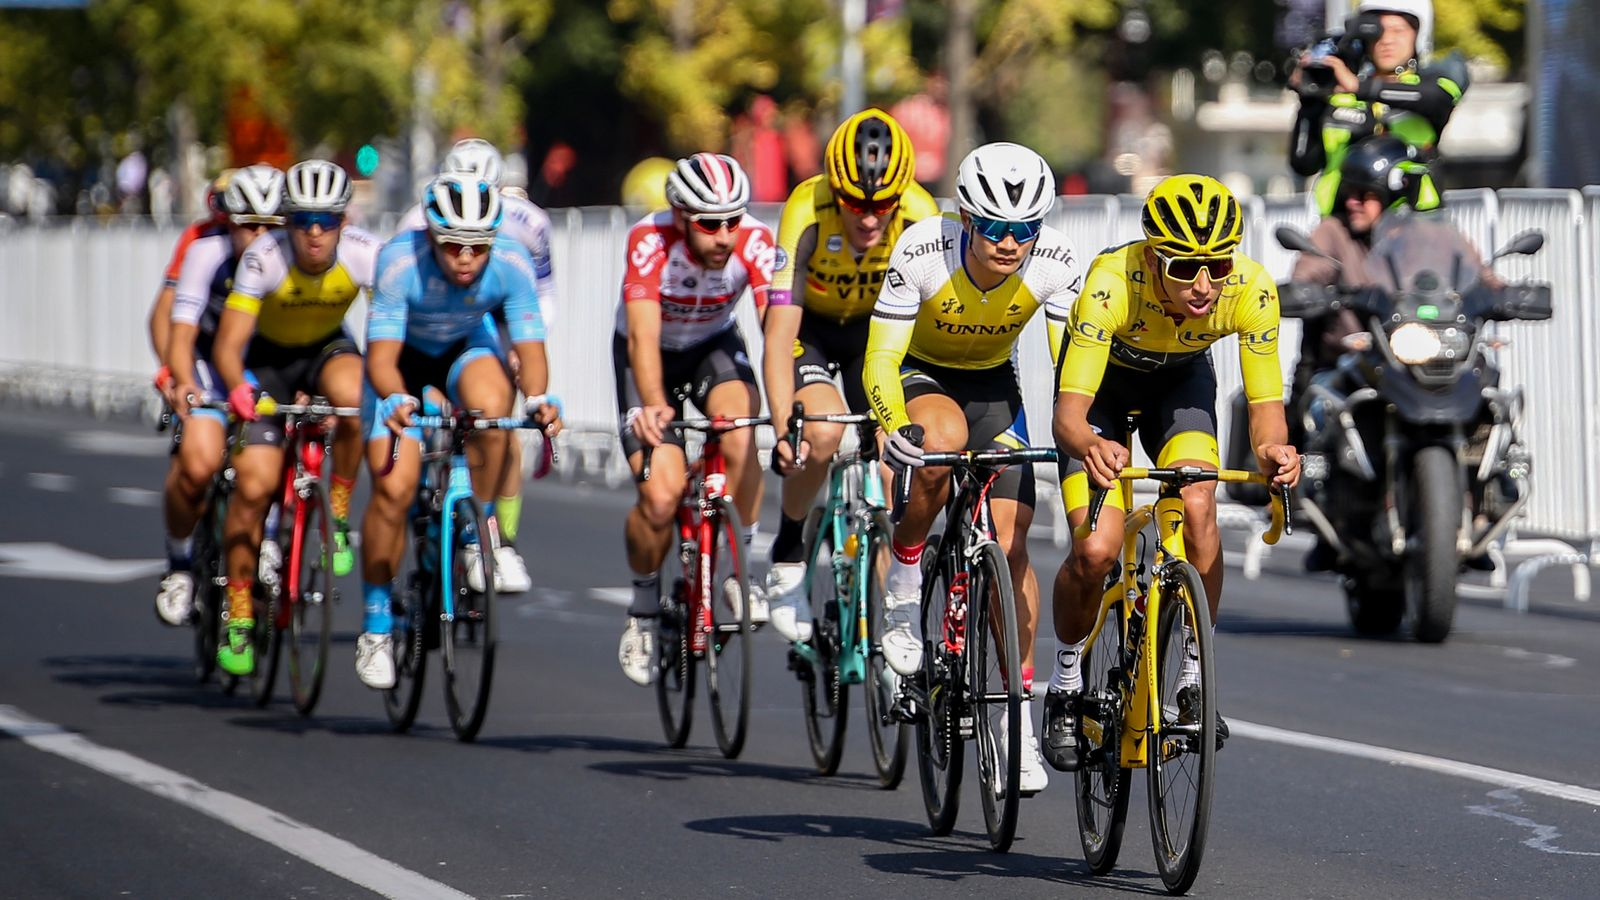 Milan san remo 2021 betting on sports comment gagner des bitcoins worth